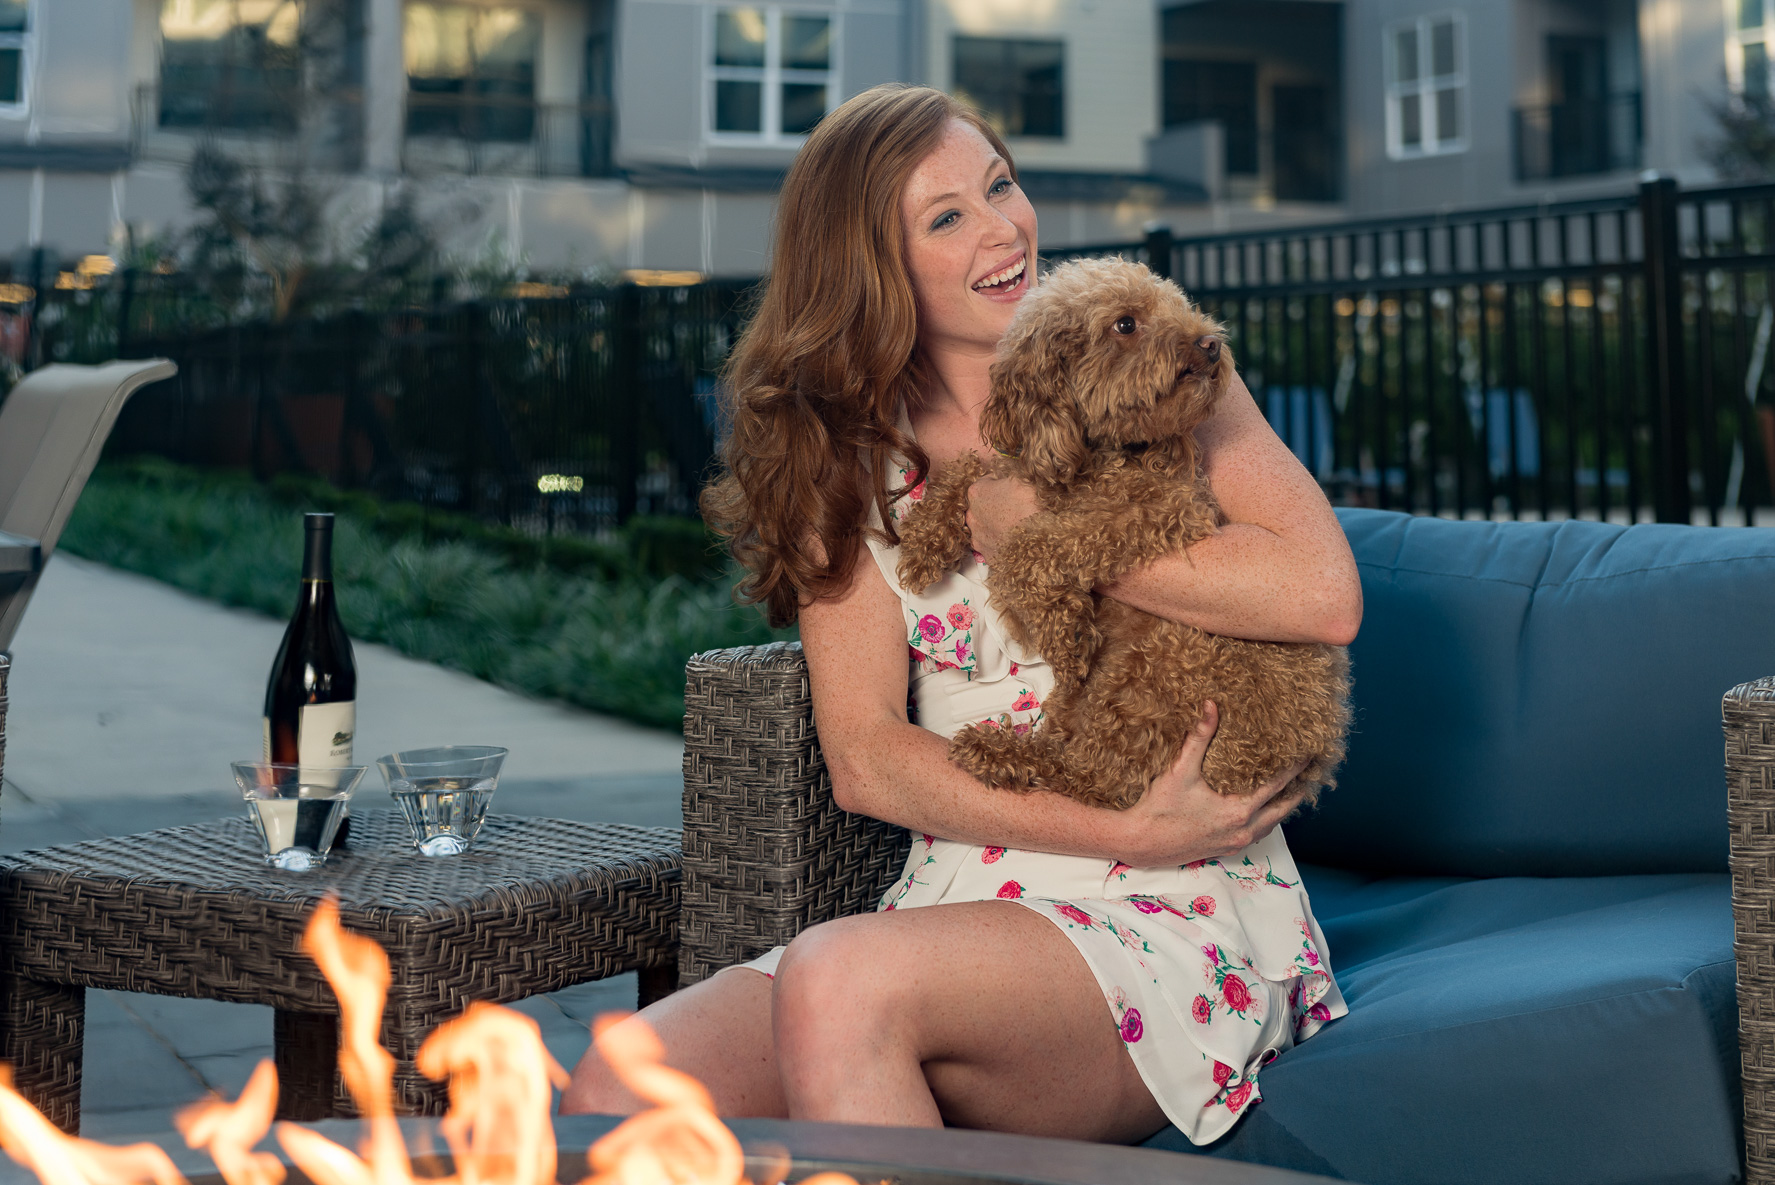 Woman laughing and holding small, fluffy dog in front of outdoor fireplace